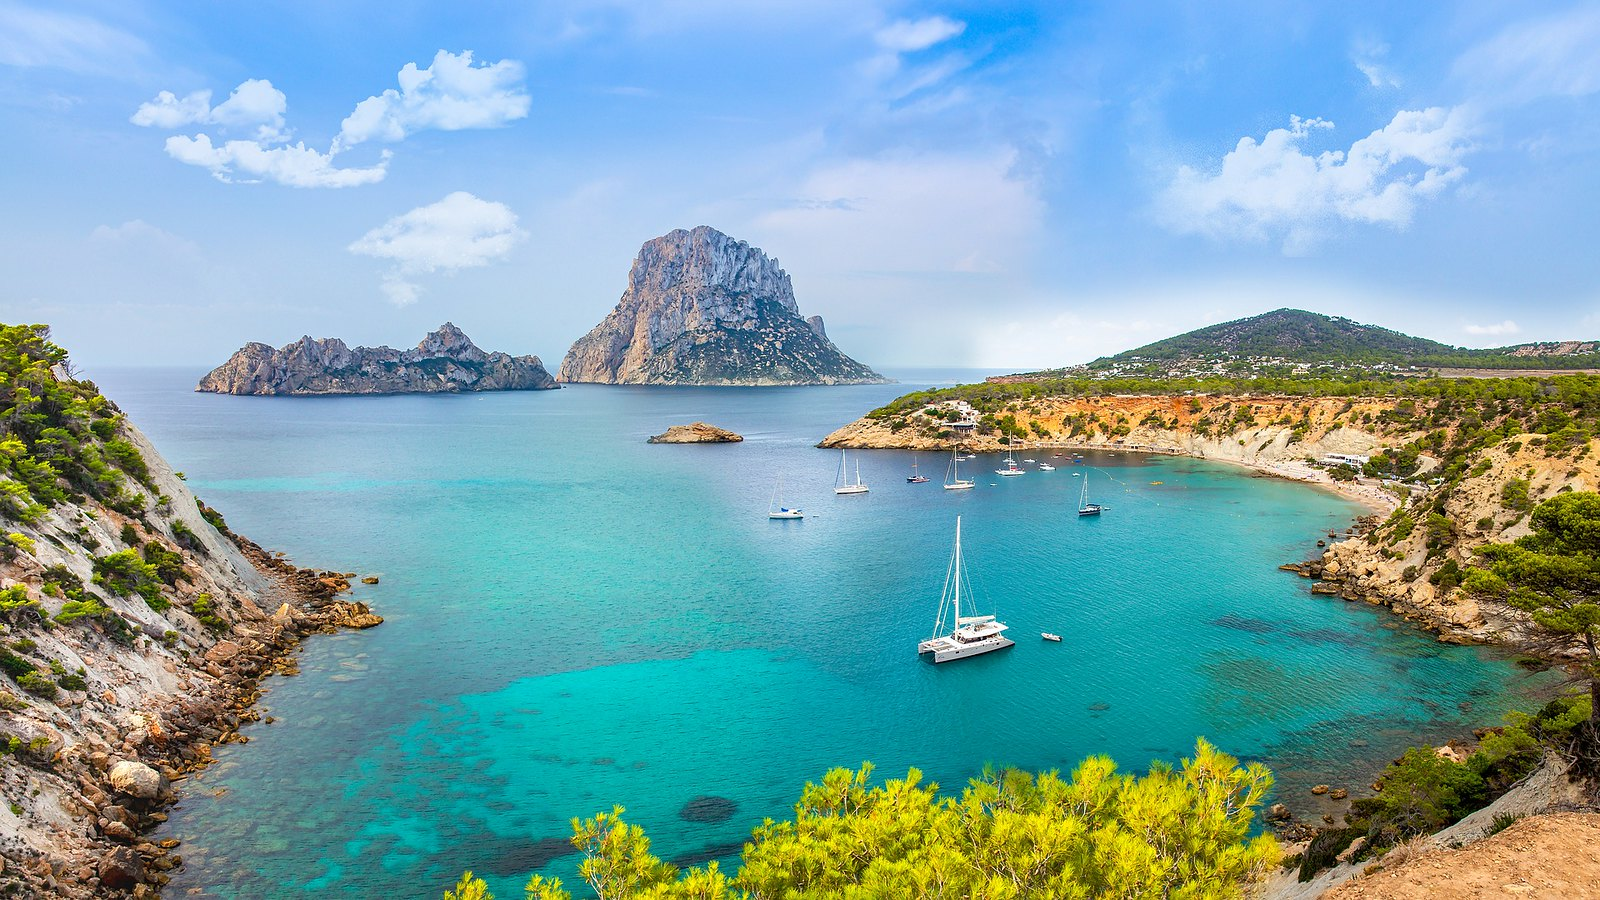 A view of the azure sea of Ibiza Island, with boats anchored in the bay.